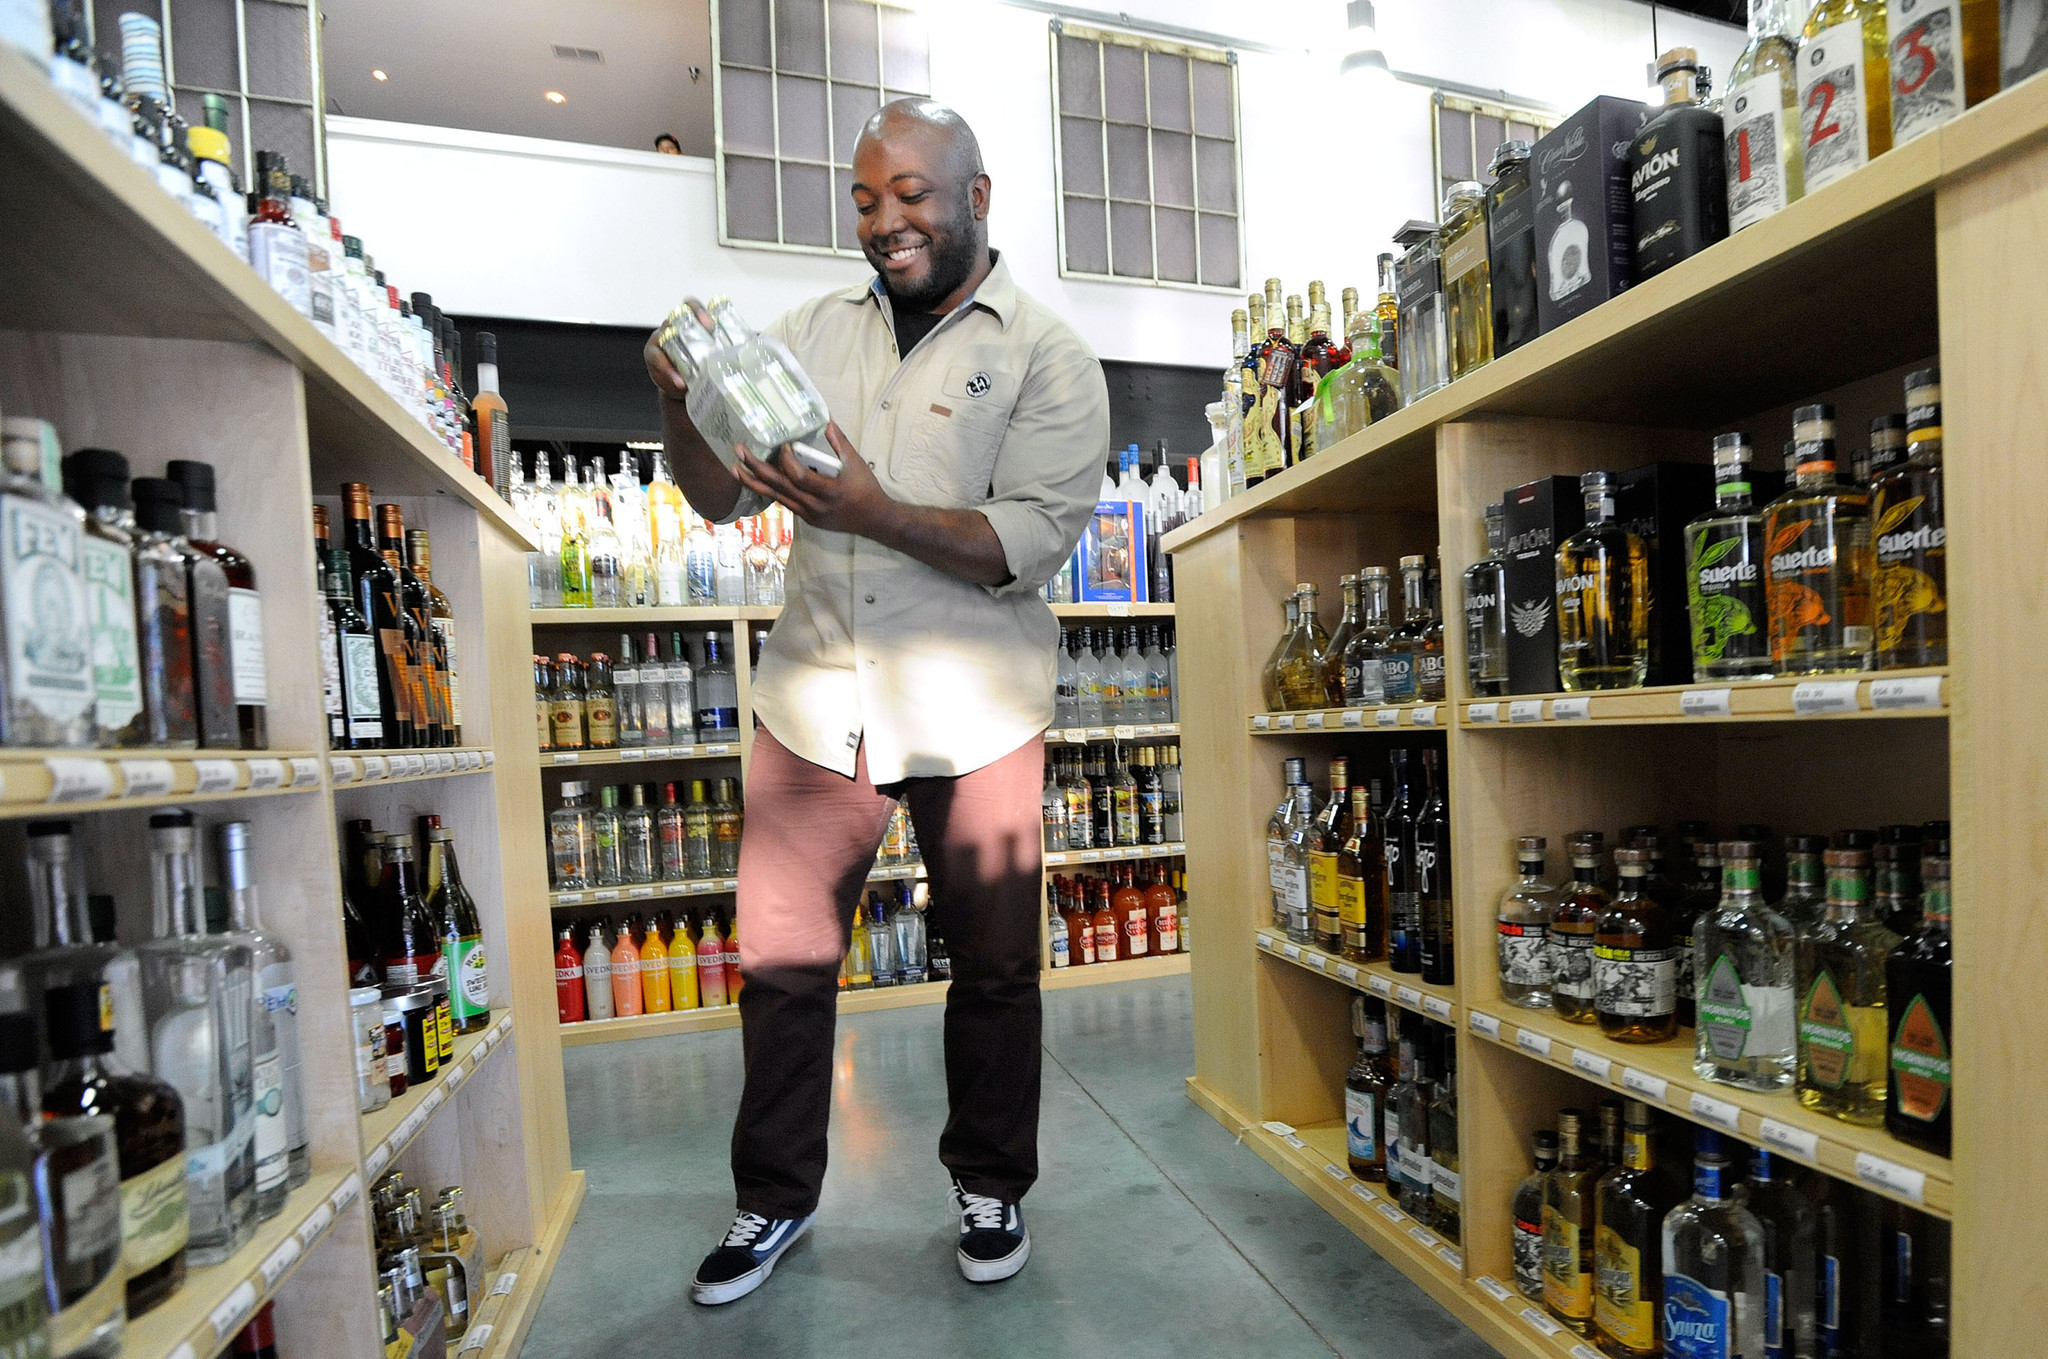 National liquor distributor fights Maryland charges - Baltimore Sun